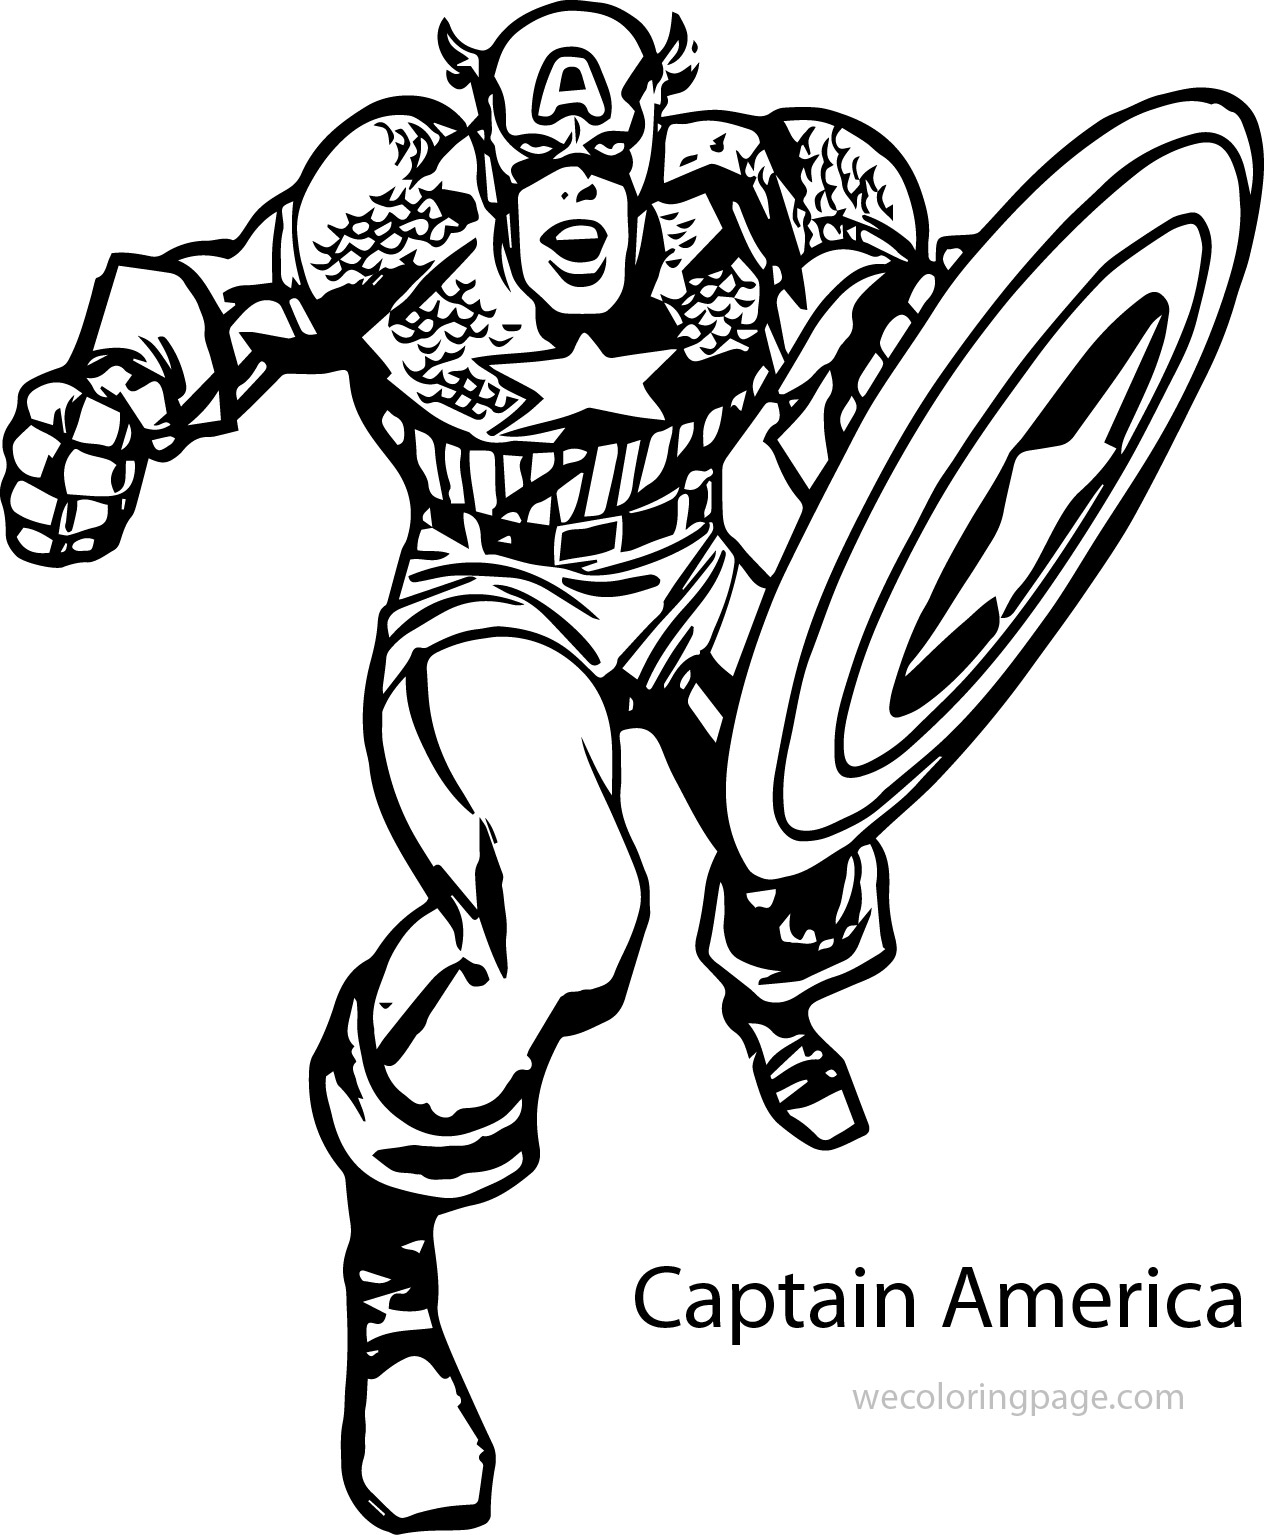 Angry Captain America Coloring Pages | Wecoloringpage.com